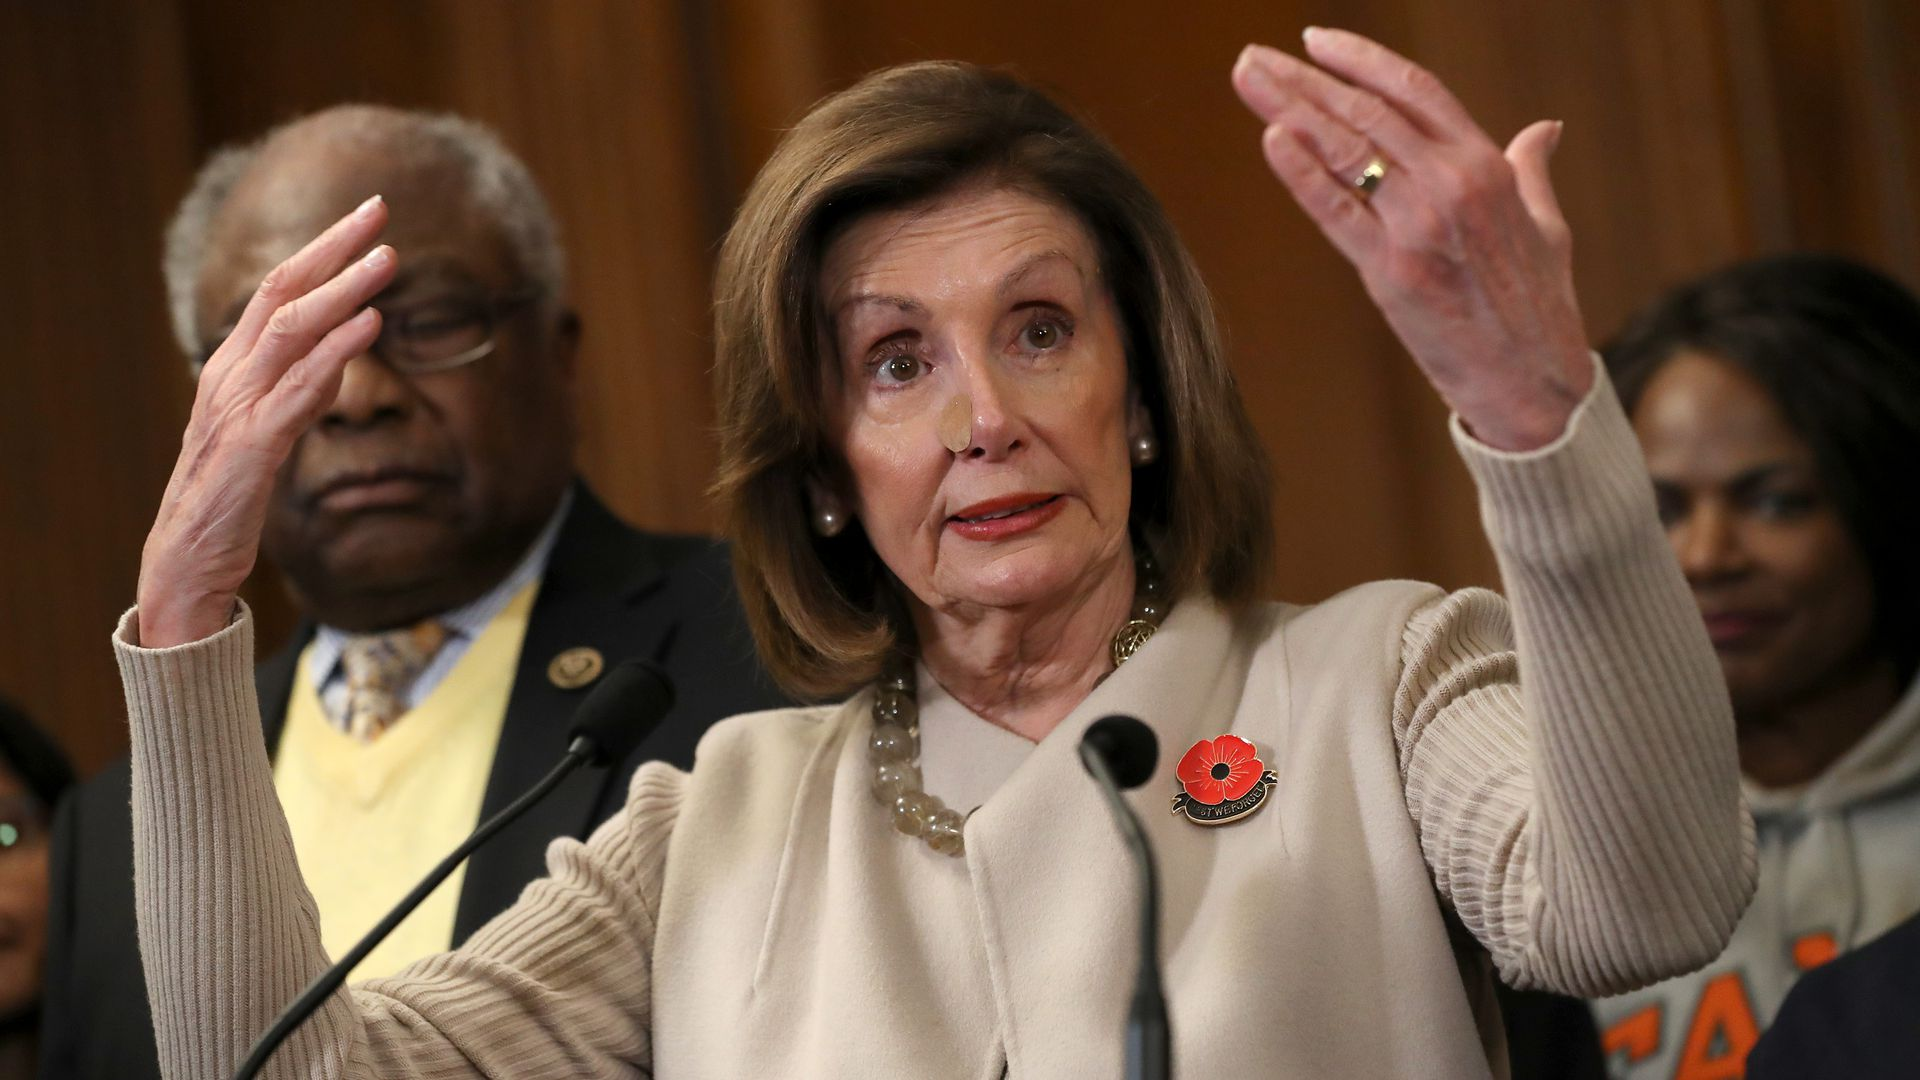 In this image, Pelosi stands with her arms above her head.